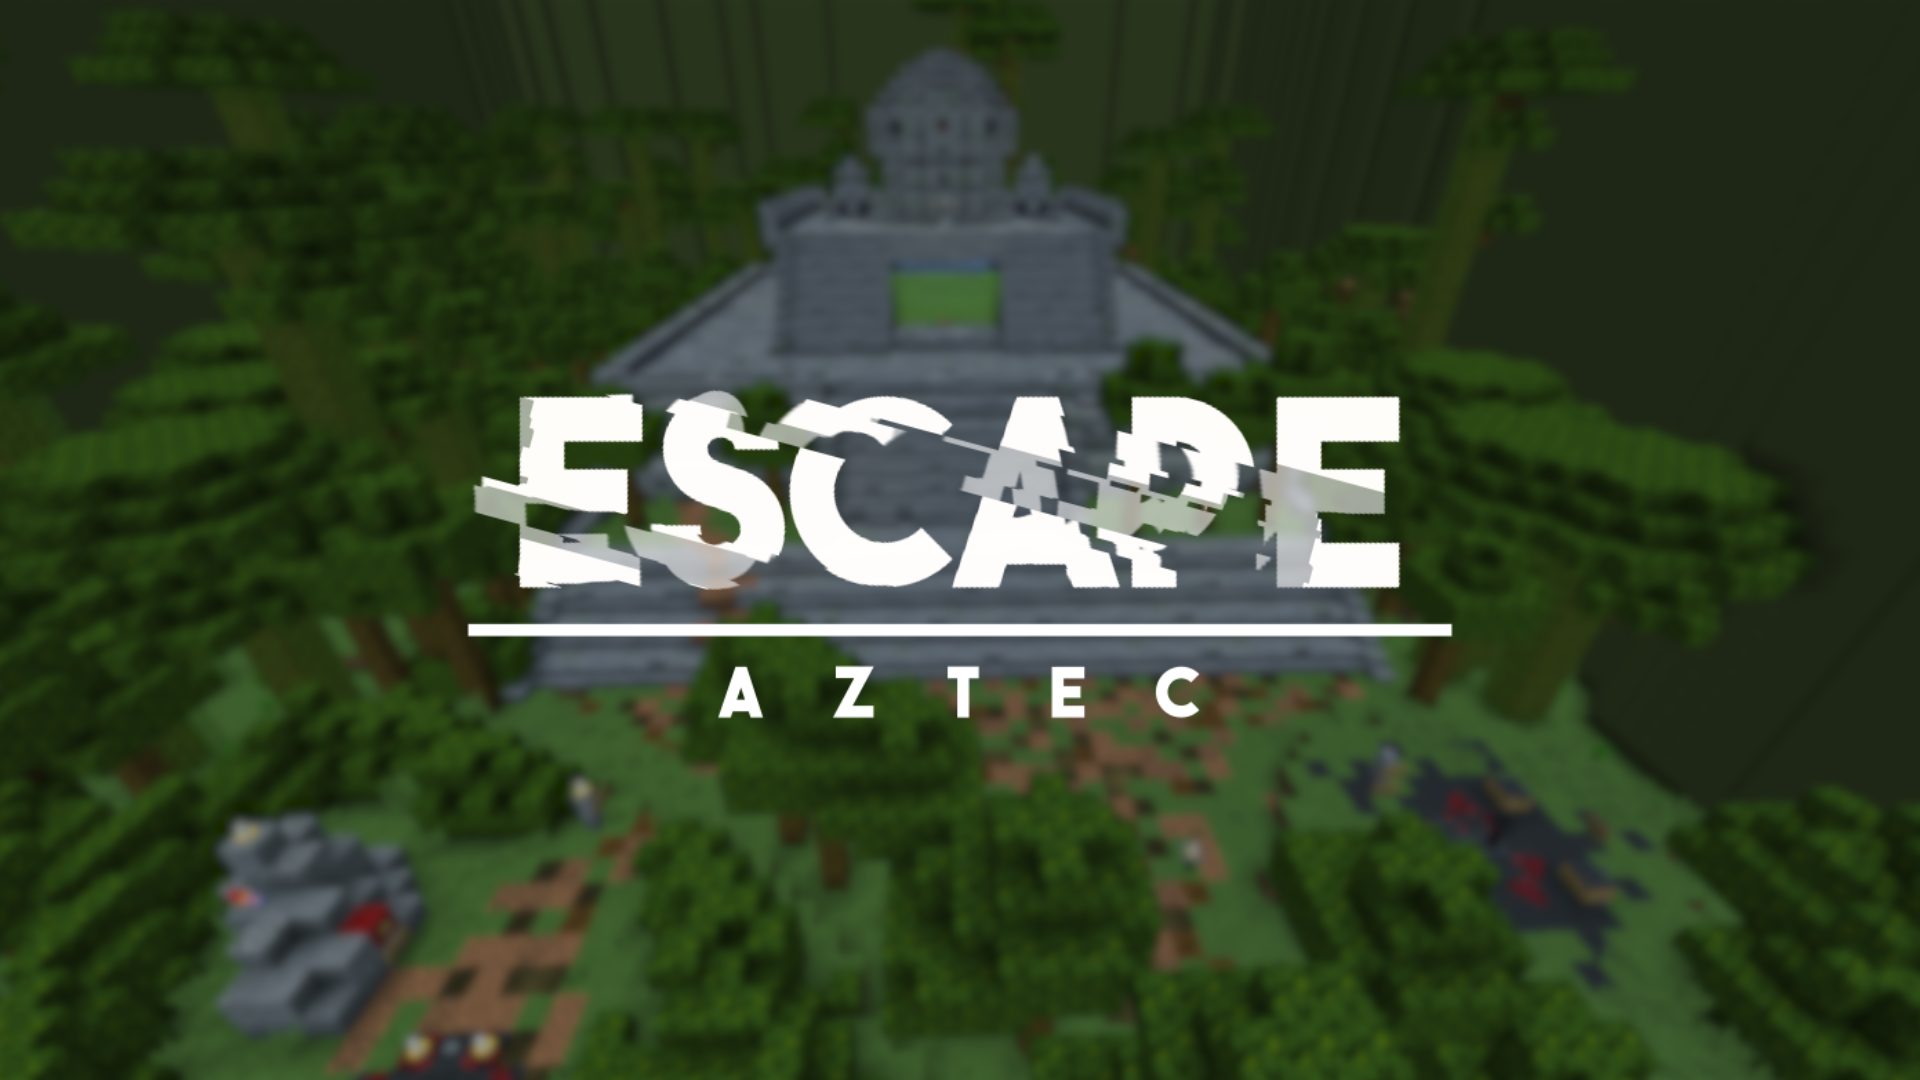 Escape: Aztec